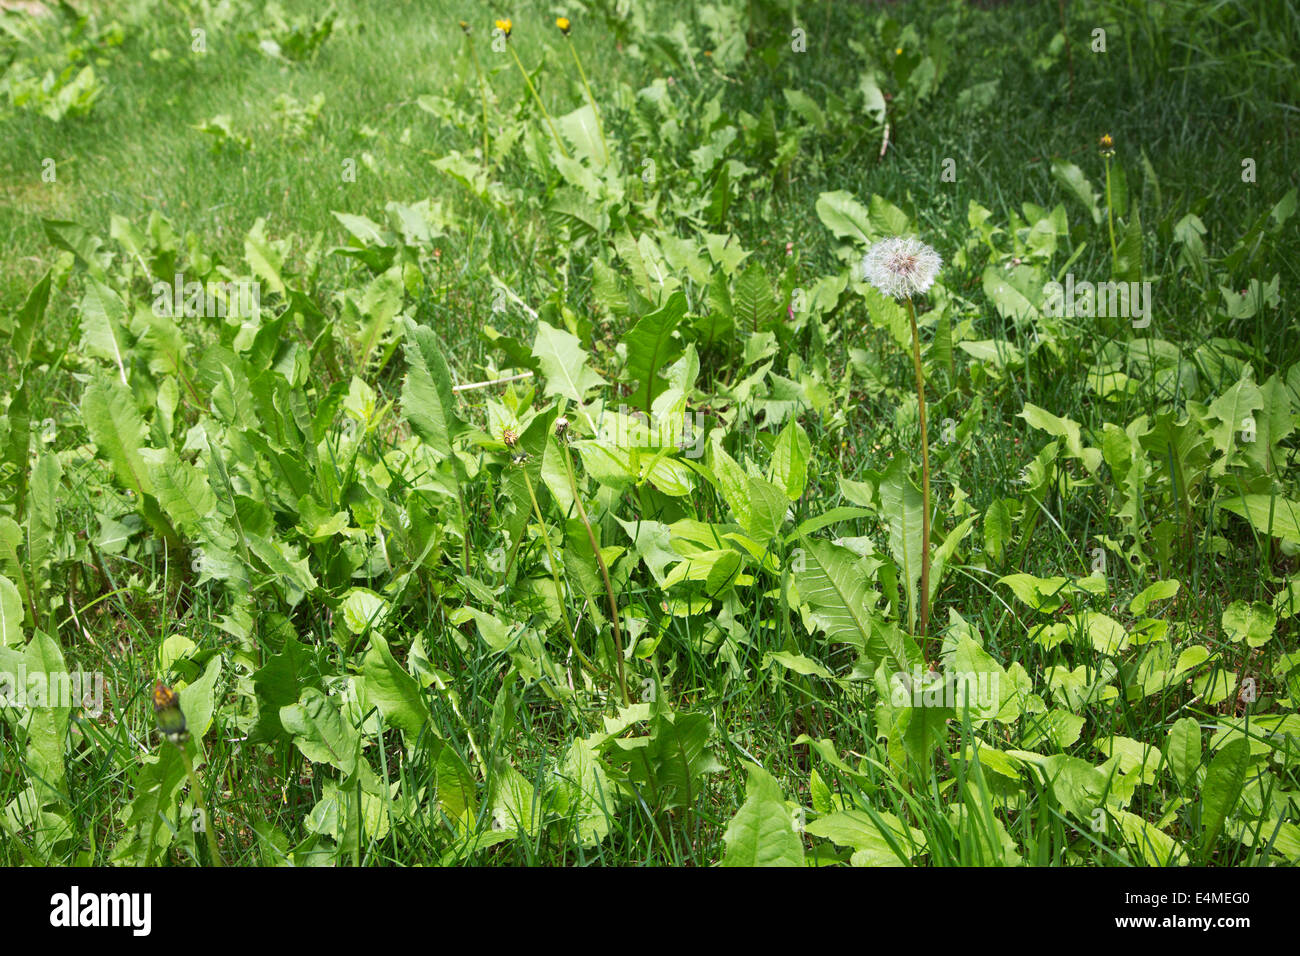 Unkempt lawn with weeds and dandelion gone to seed - Stock Image